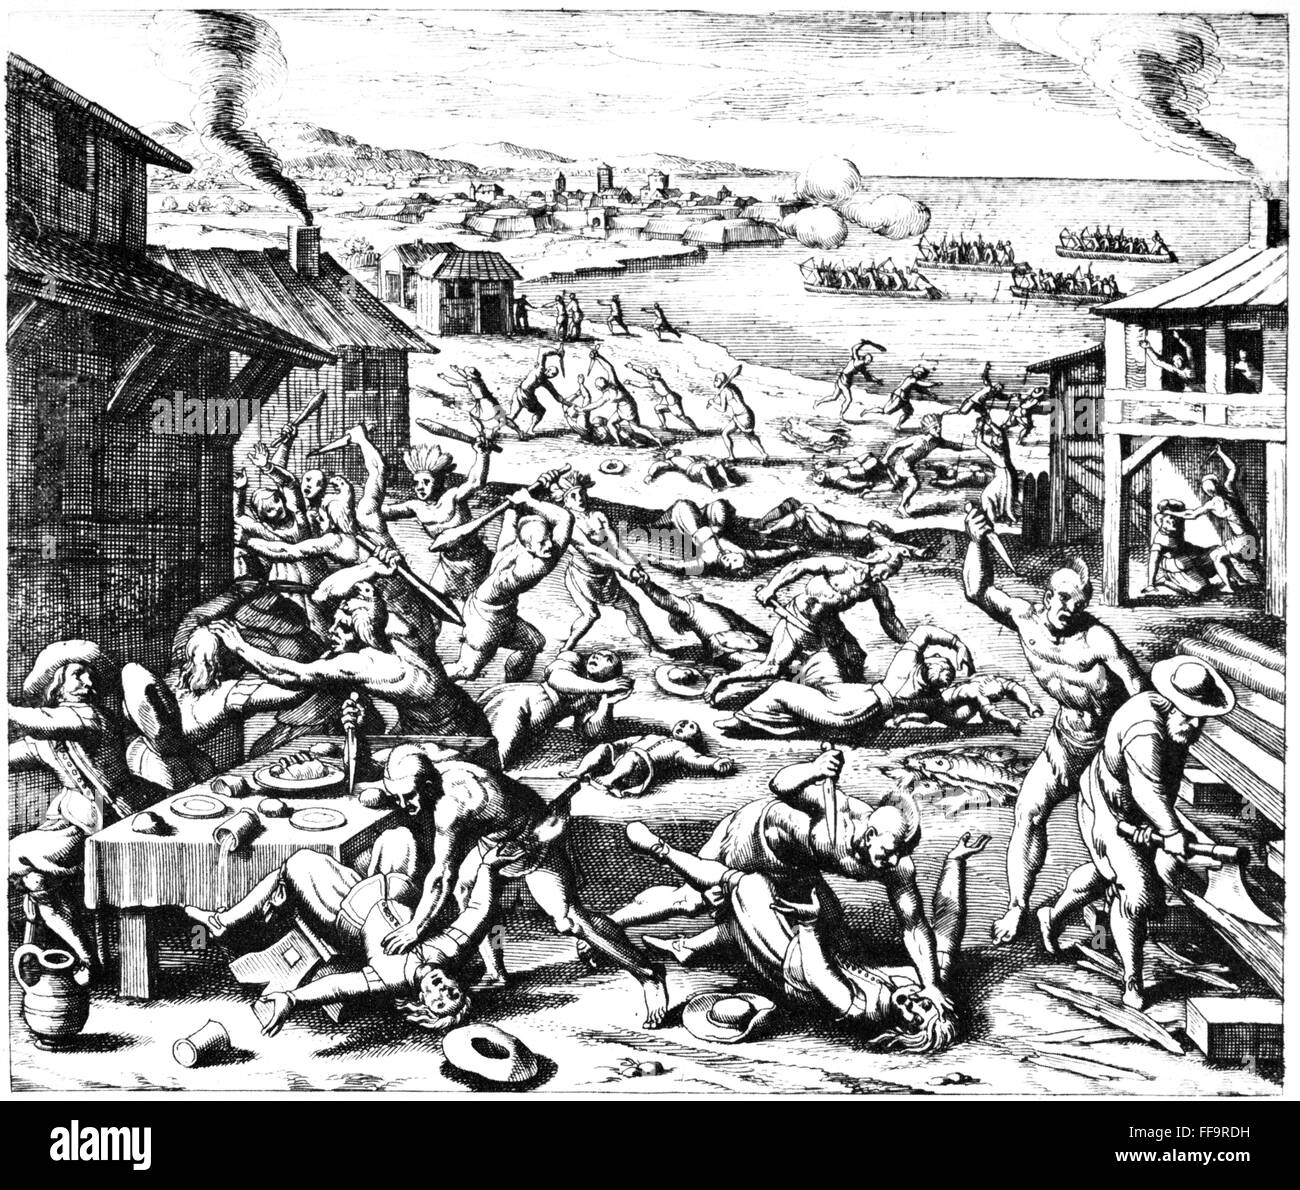 /nThe massacre at Jamestown, Virginia, 1622. Line engraving, 1628, by  Matthaeus Merian.